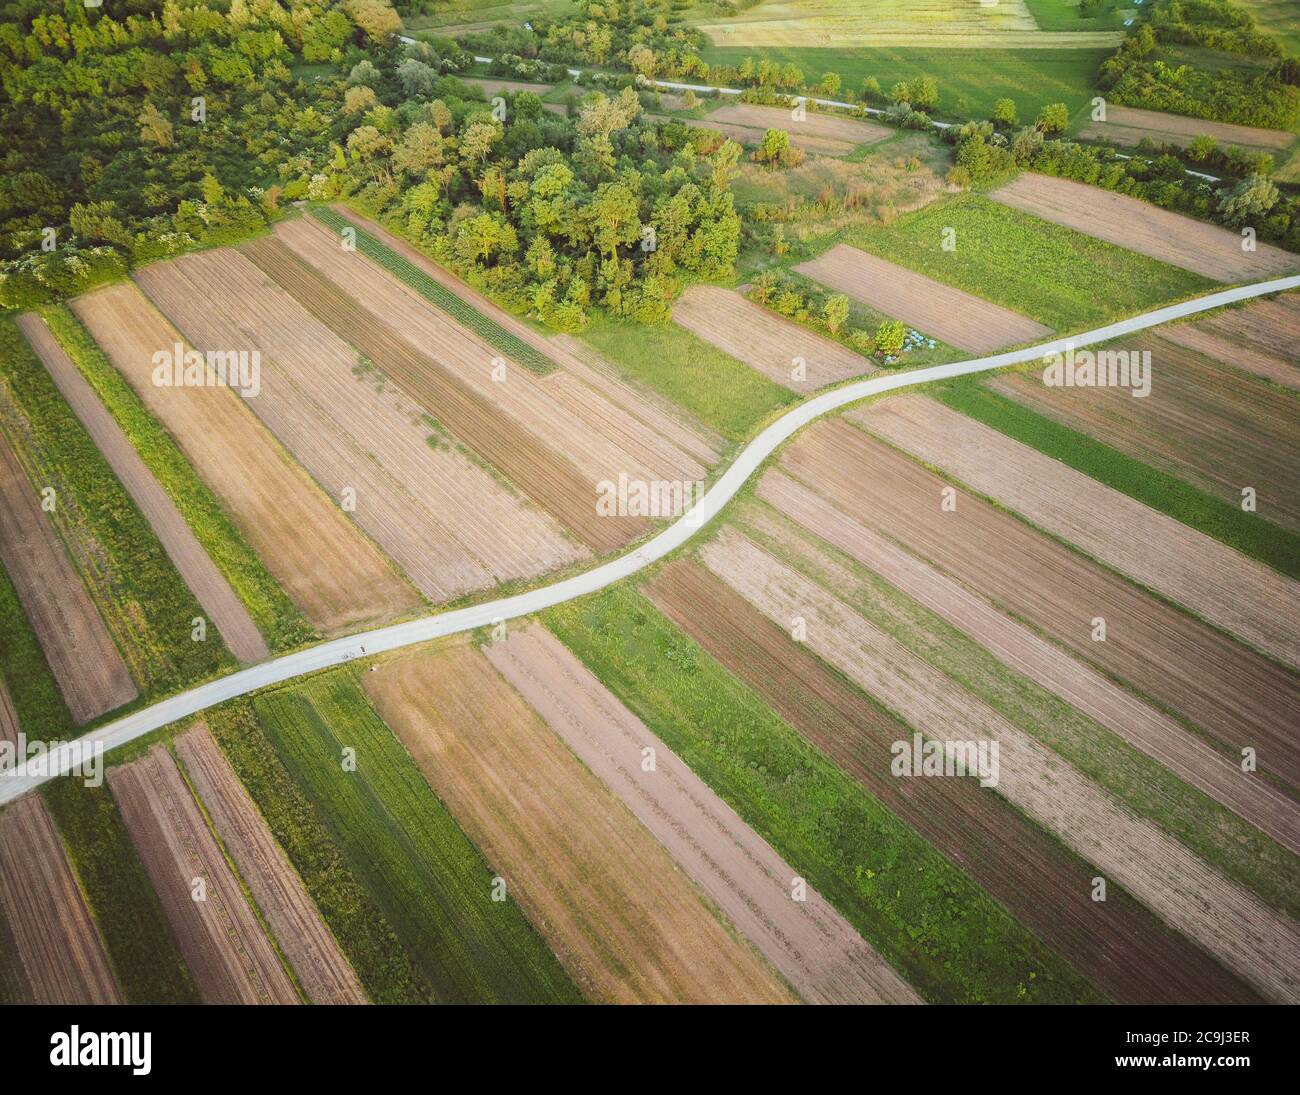 Eagle eye view of narrow dirt road in the middle of cultivated crop field on the forest edge  in rural landscape around Zagreb city, Croatia Stock Photo